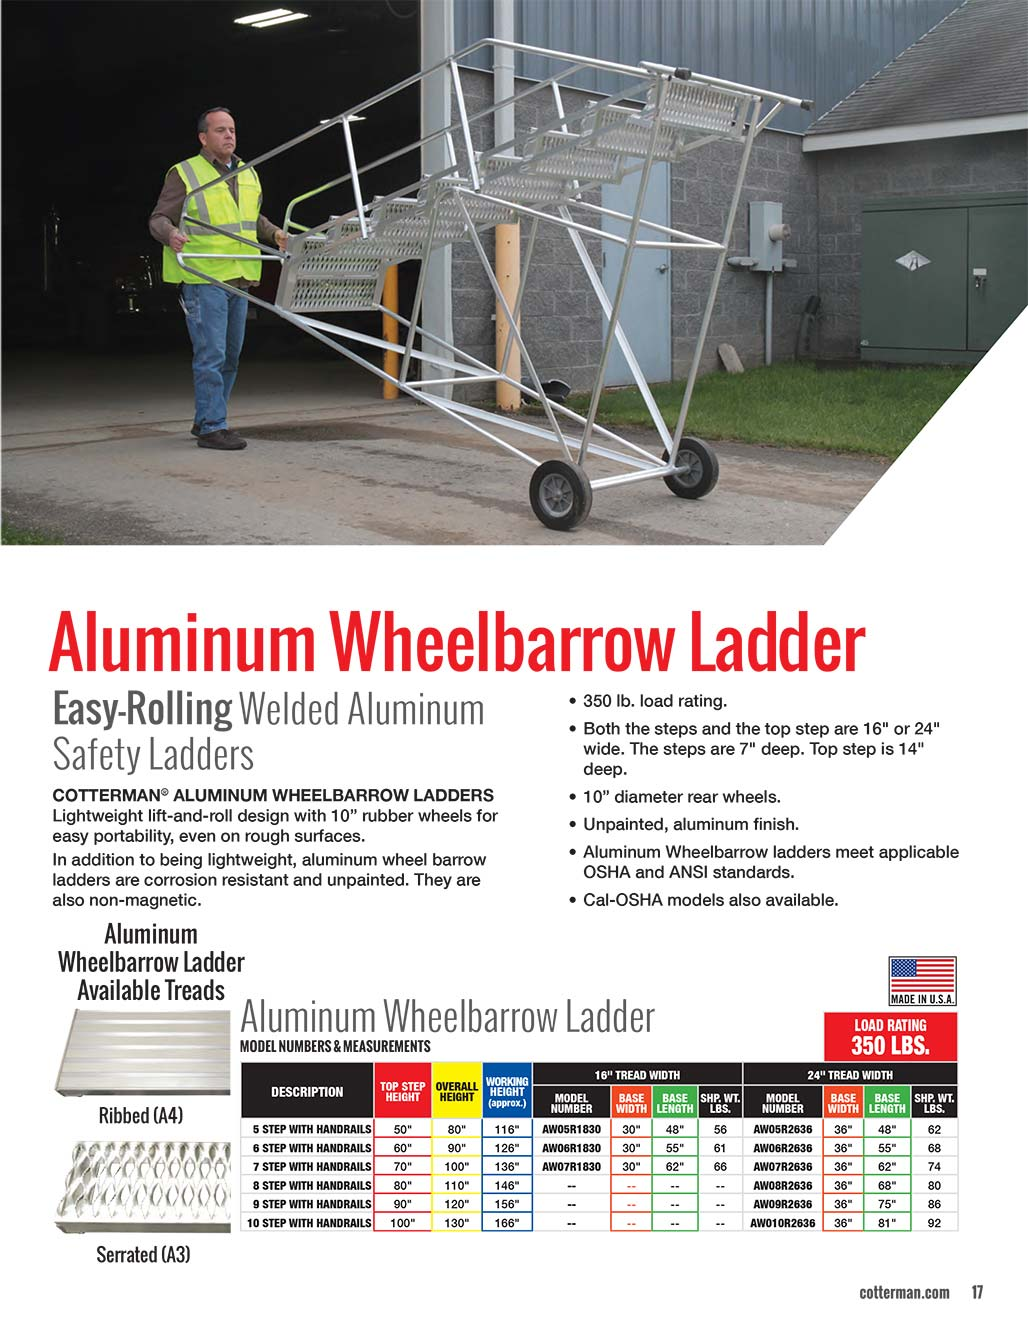 Cotterman Wheelbarrow Ladder Technical Specs